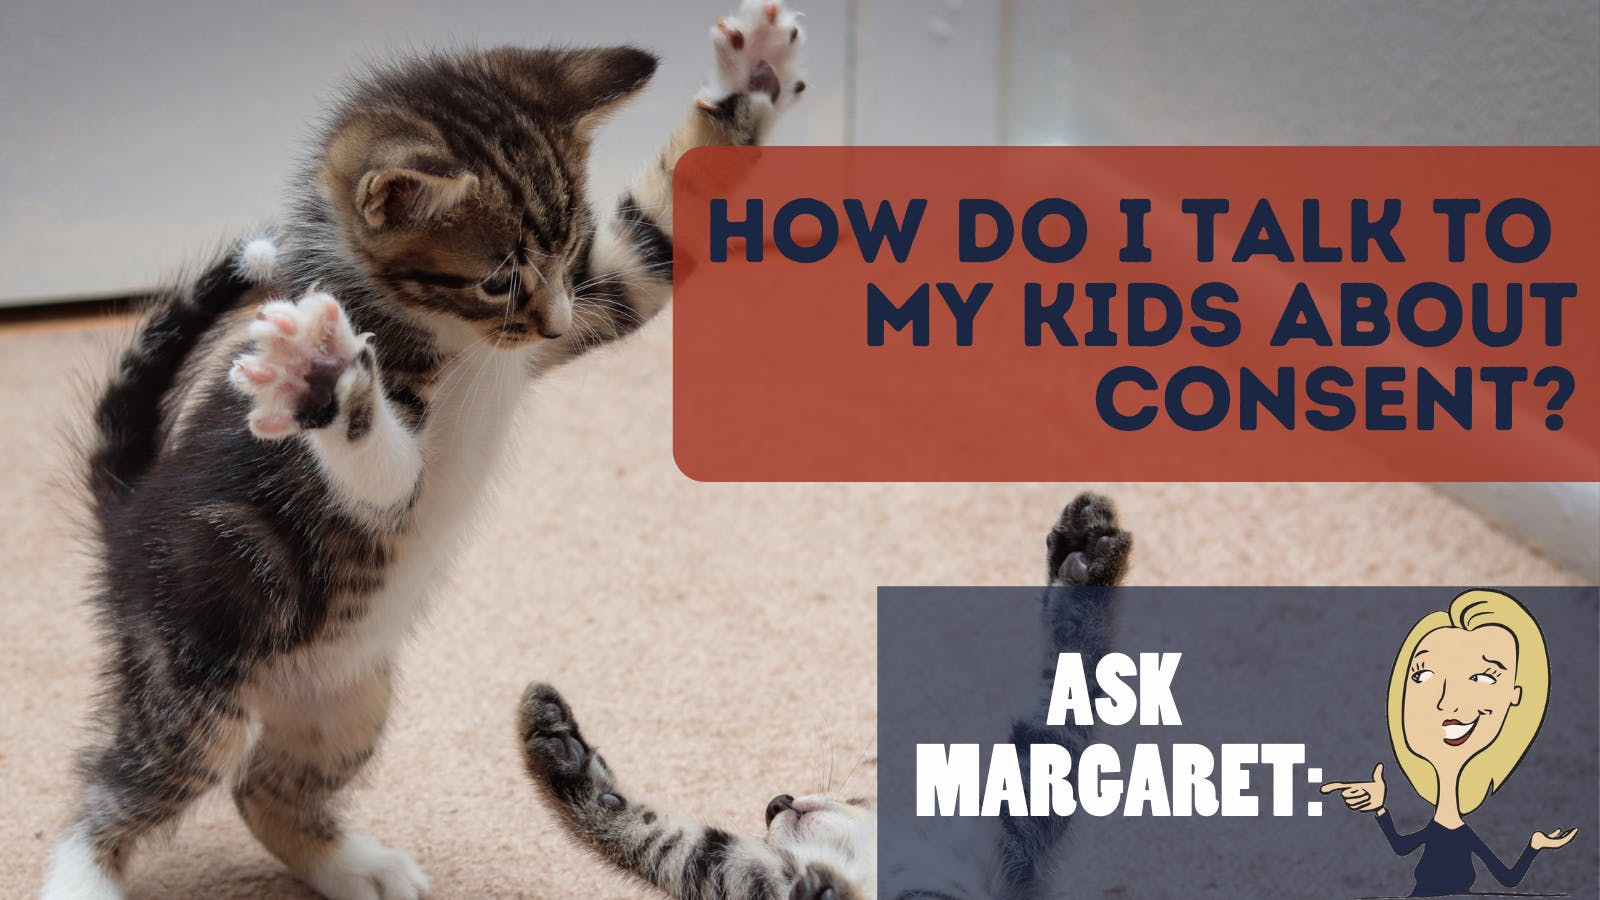 Ask Margaret: How Do I Talk to My Kids About Consent?